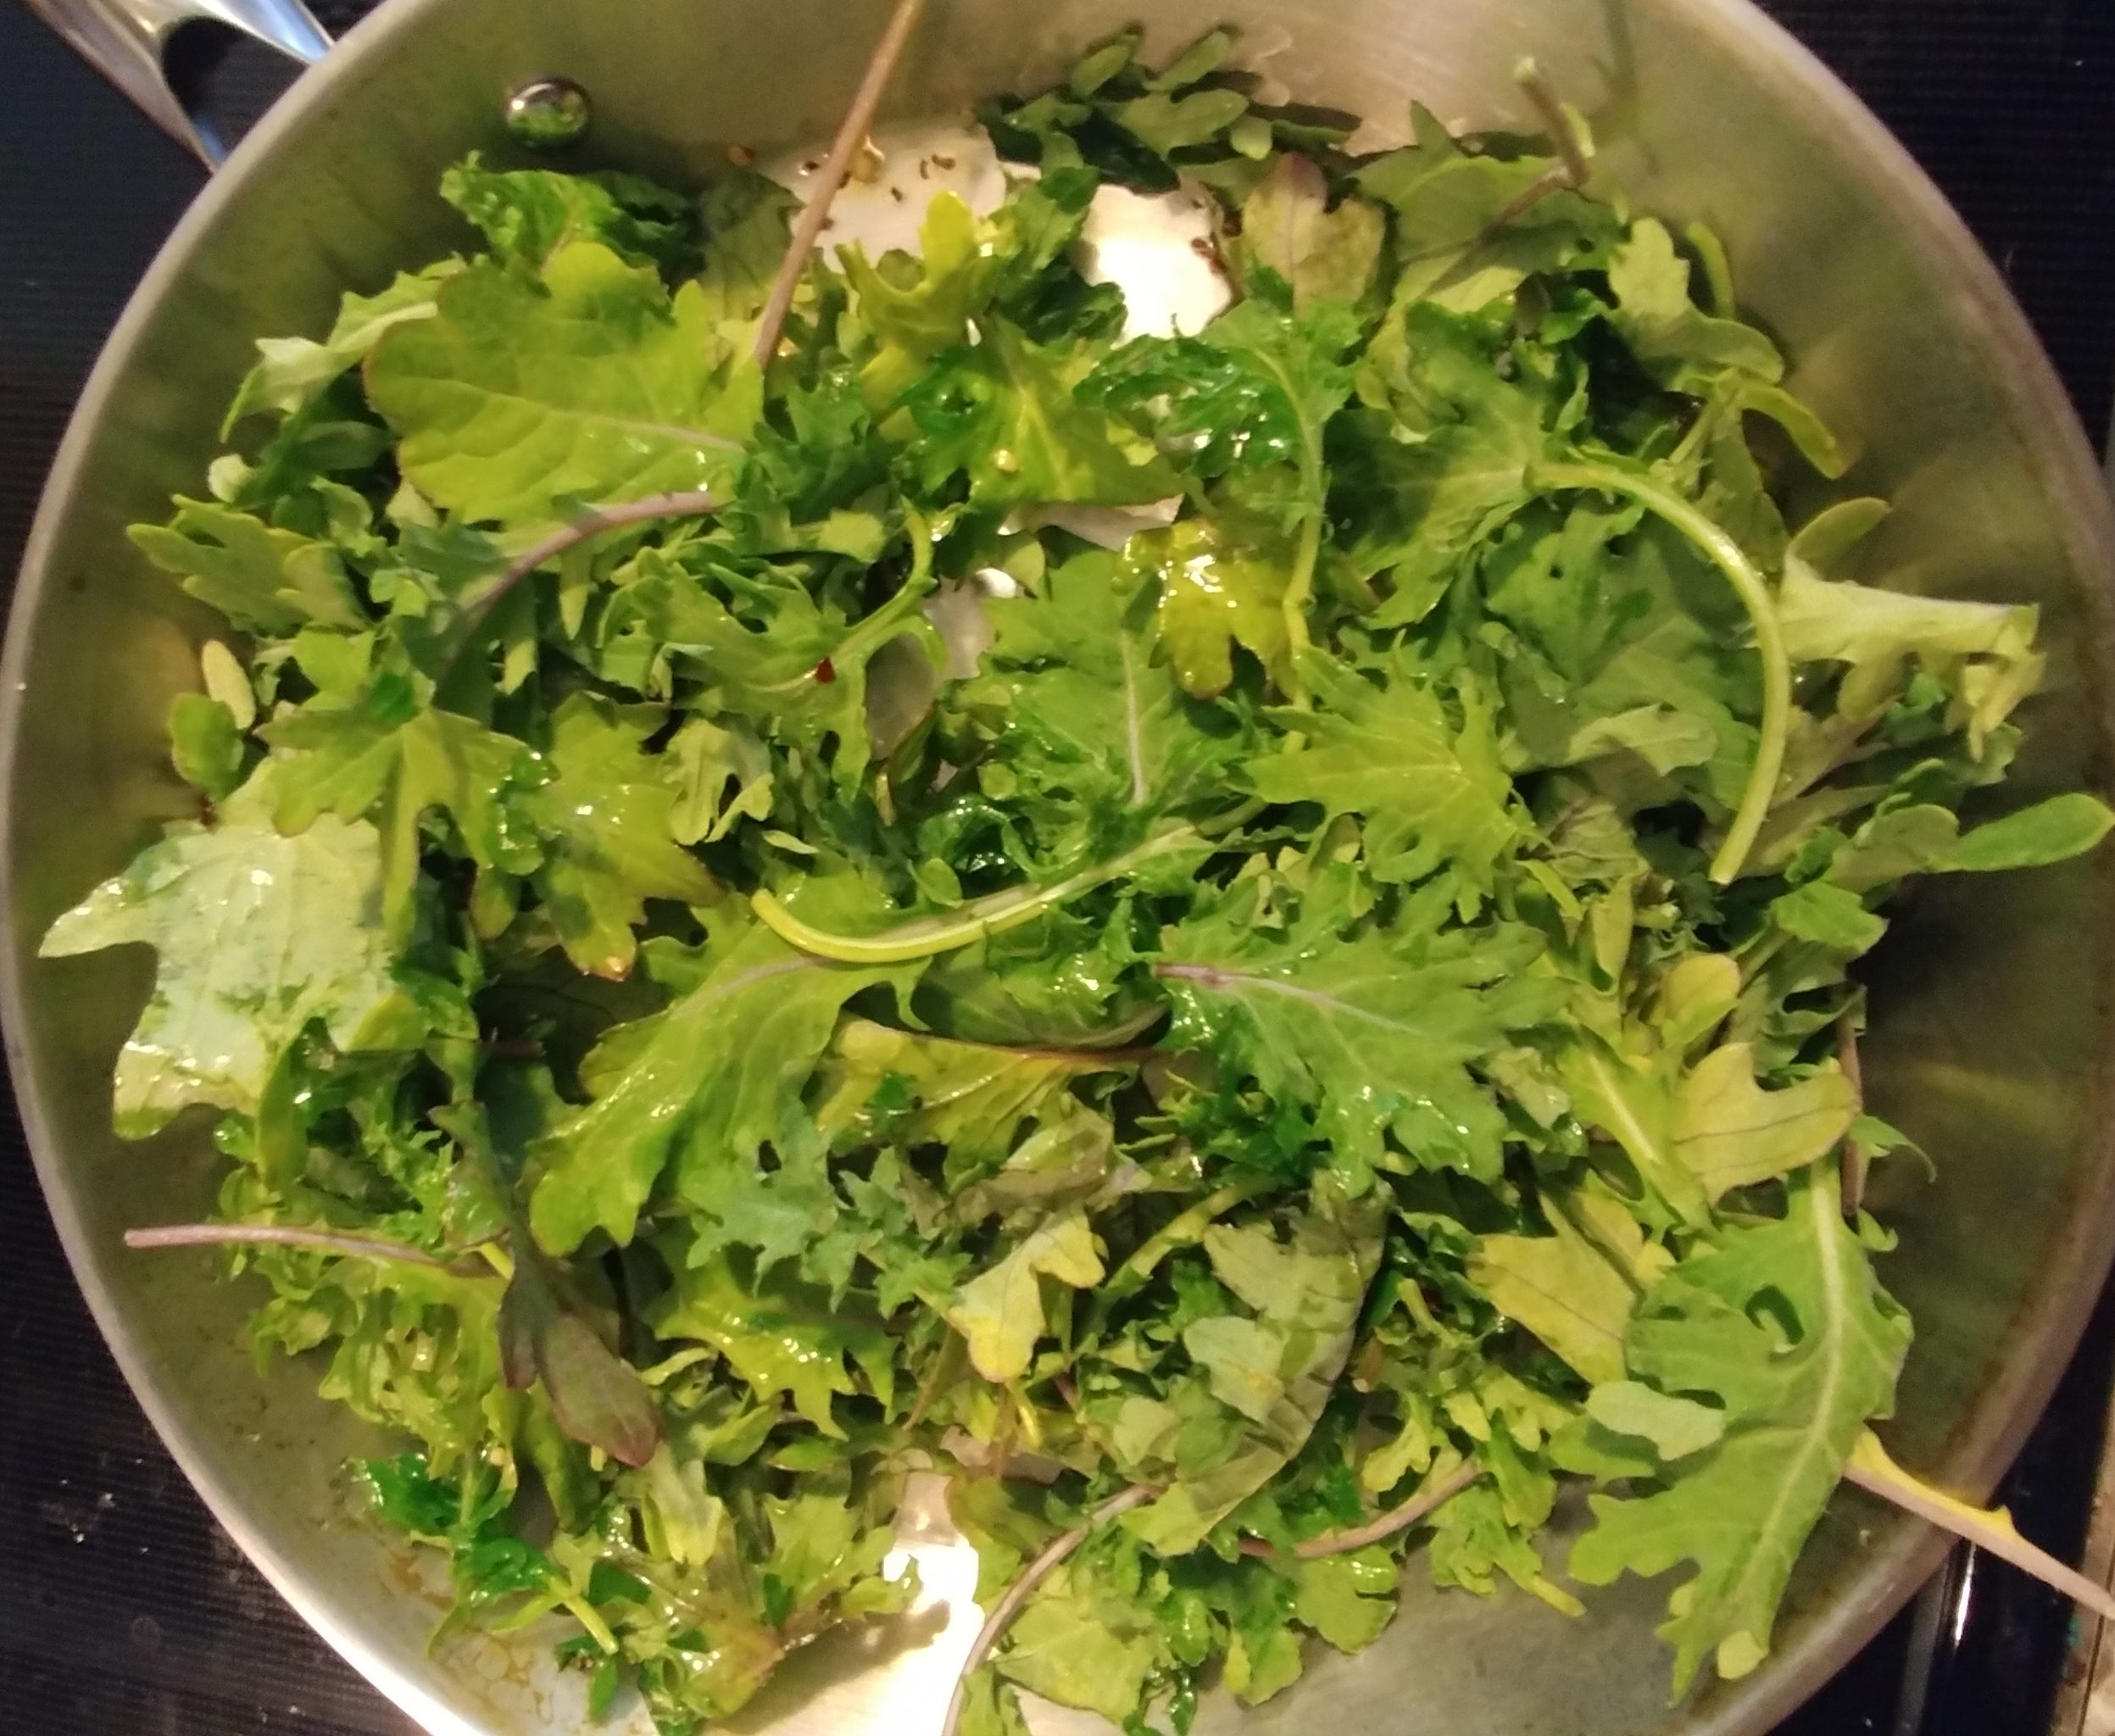 Garlicky Kale and Spinach